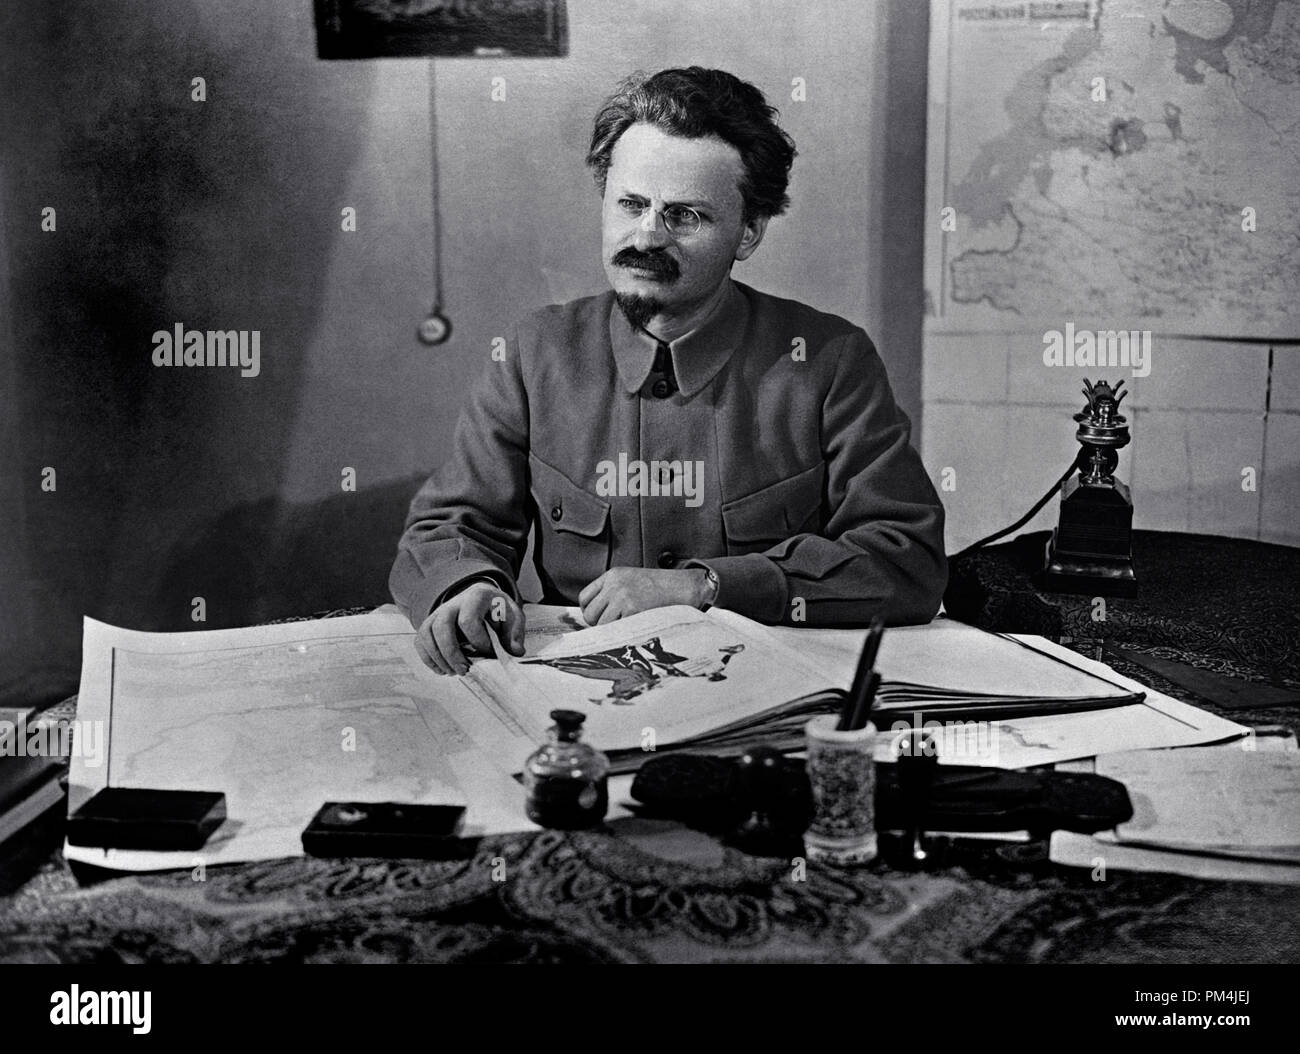 Russian revolutionary, political leader and author Leon Trotsky. Trotsky was one of the central leaders of the Russian Revolution, circa 1922   File Reference # 1003_691THA - Stock Image